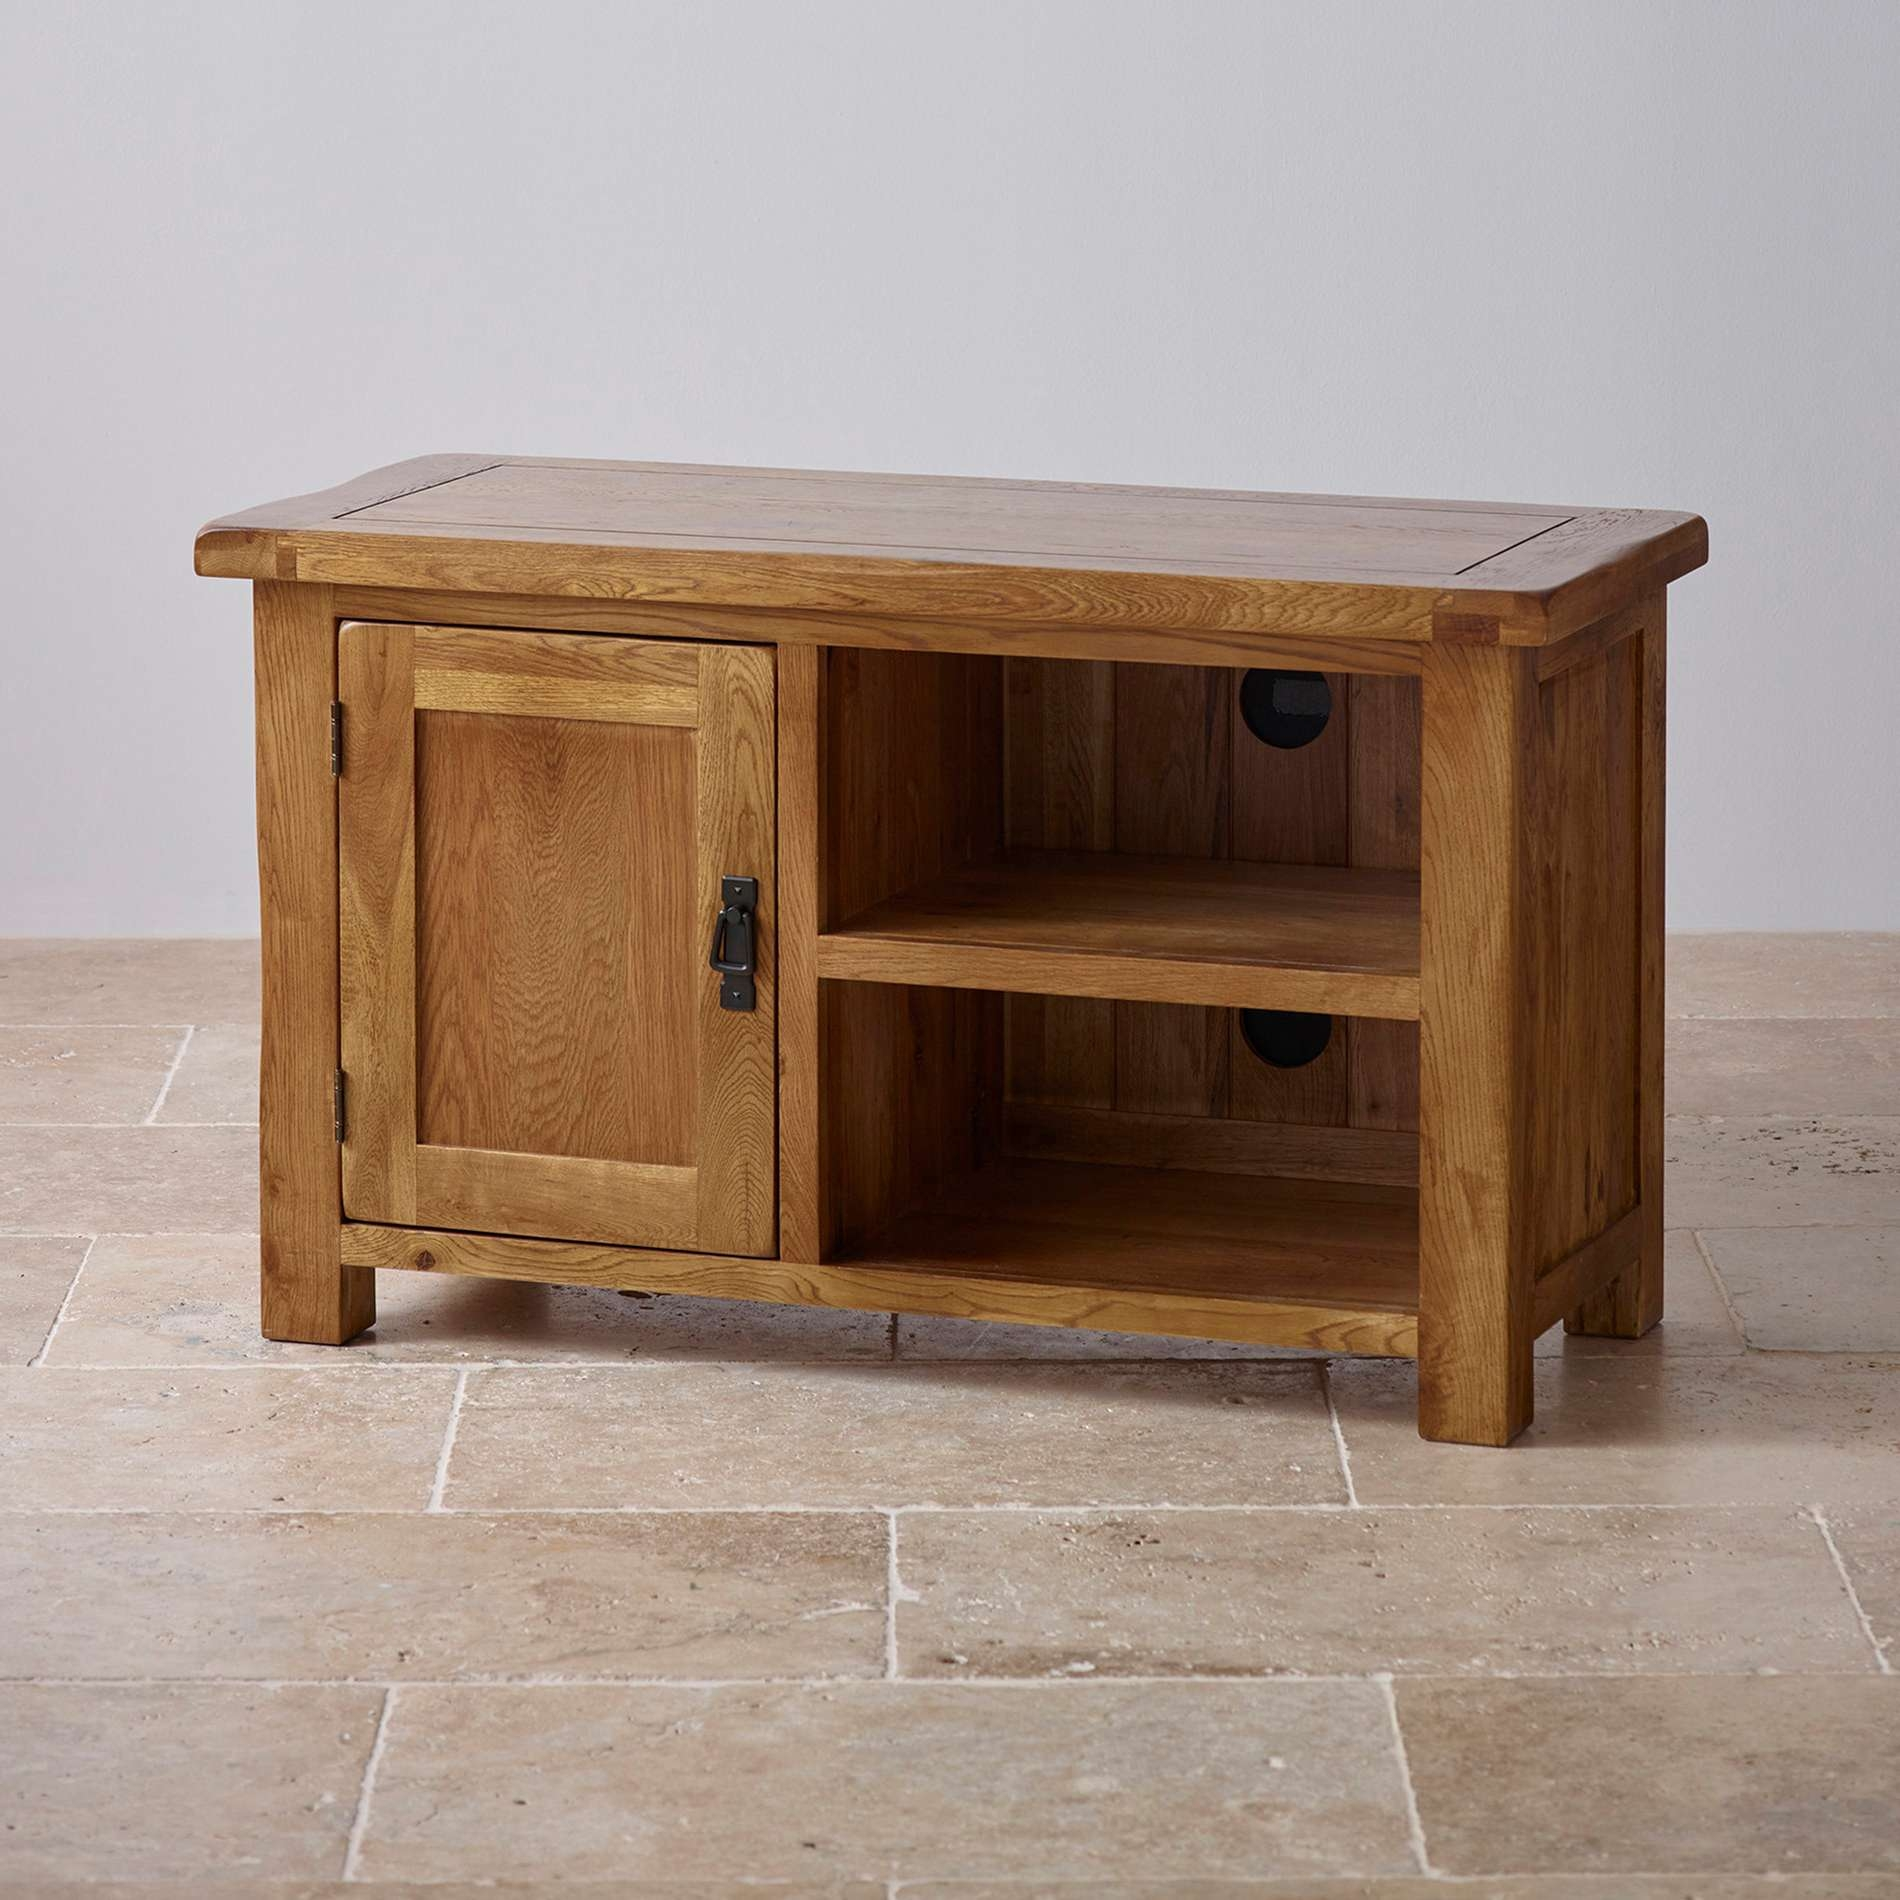 Original Rustic Tv Cabinet In Solid Oak | Oak Furniture Land Intended For Rustic Corner Tv Cabinets (View 12 of 20)